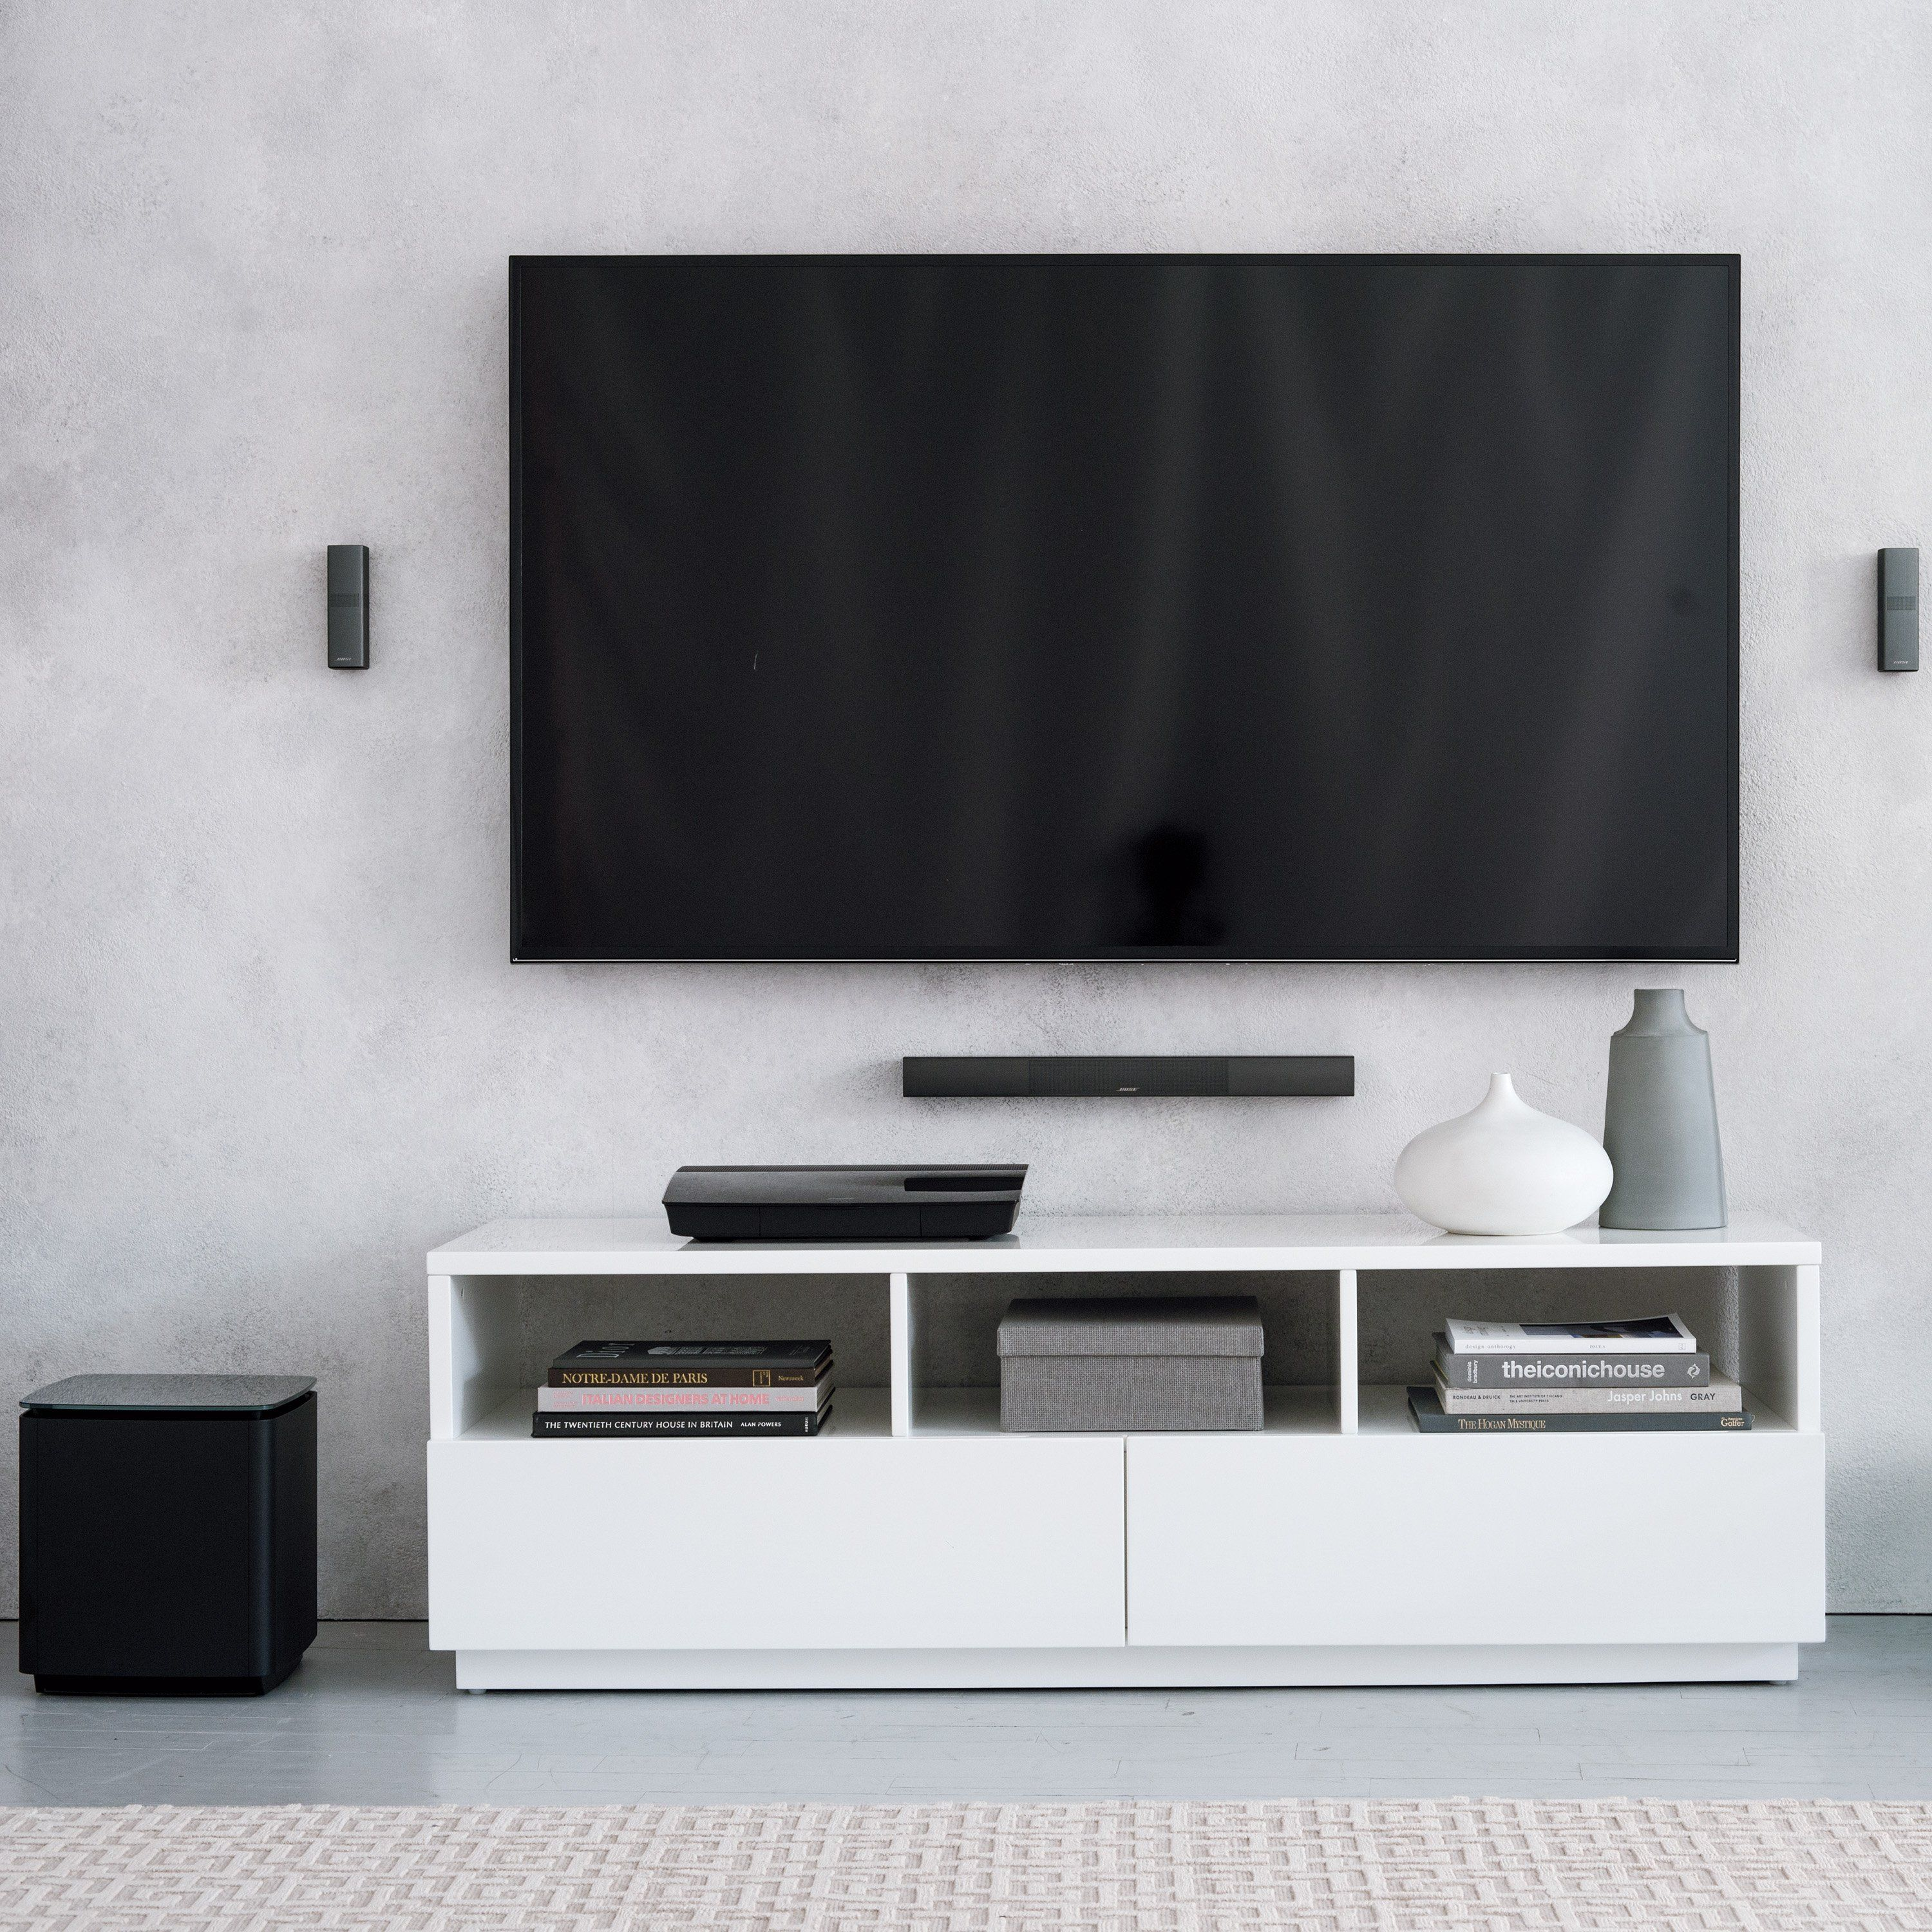 Bose Home Cinema Bose Home Theater System - Lifestyle 650 Black | Bose Home Theater, Home Cinema Room, Home